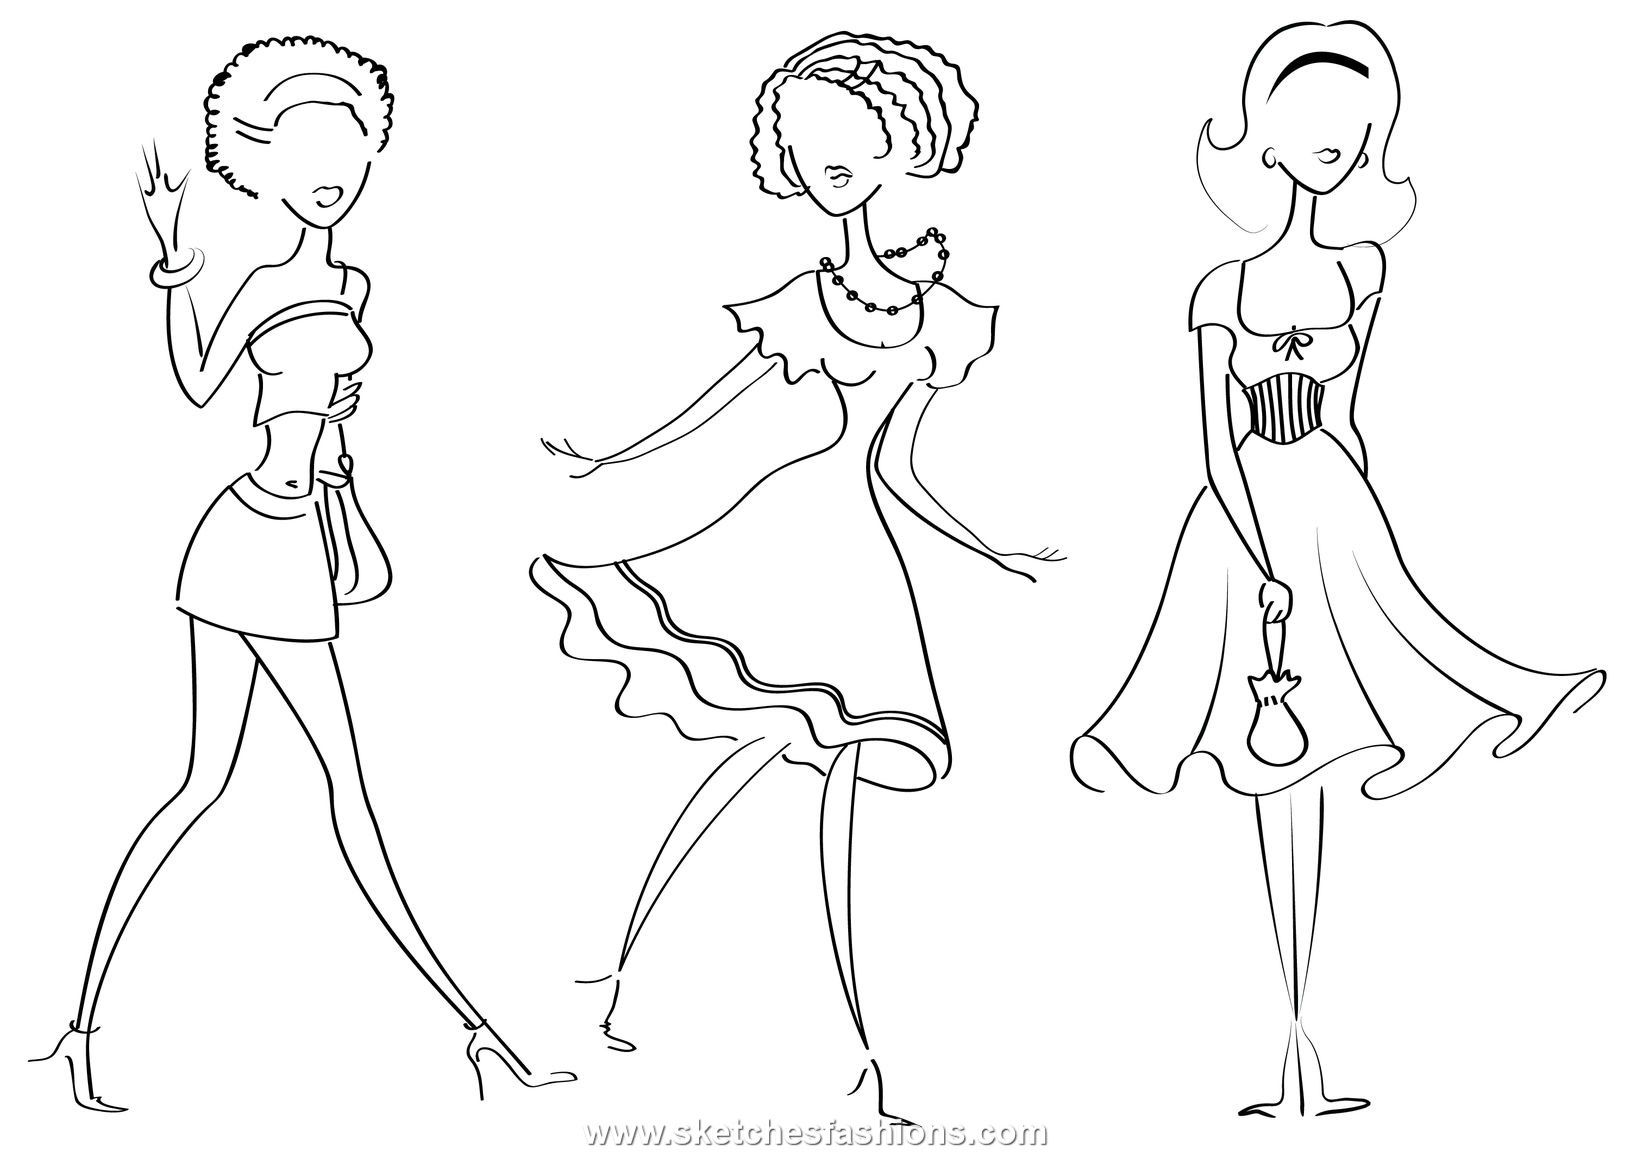 Fashion design sketches for beginners 2013 tutorial shows